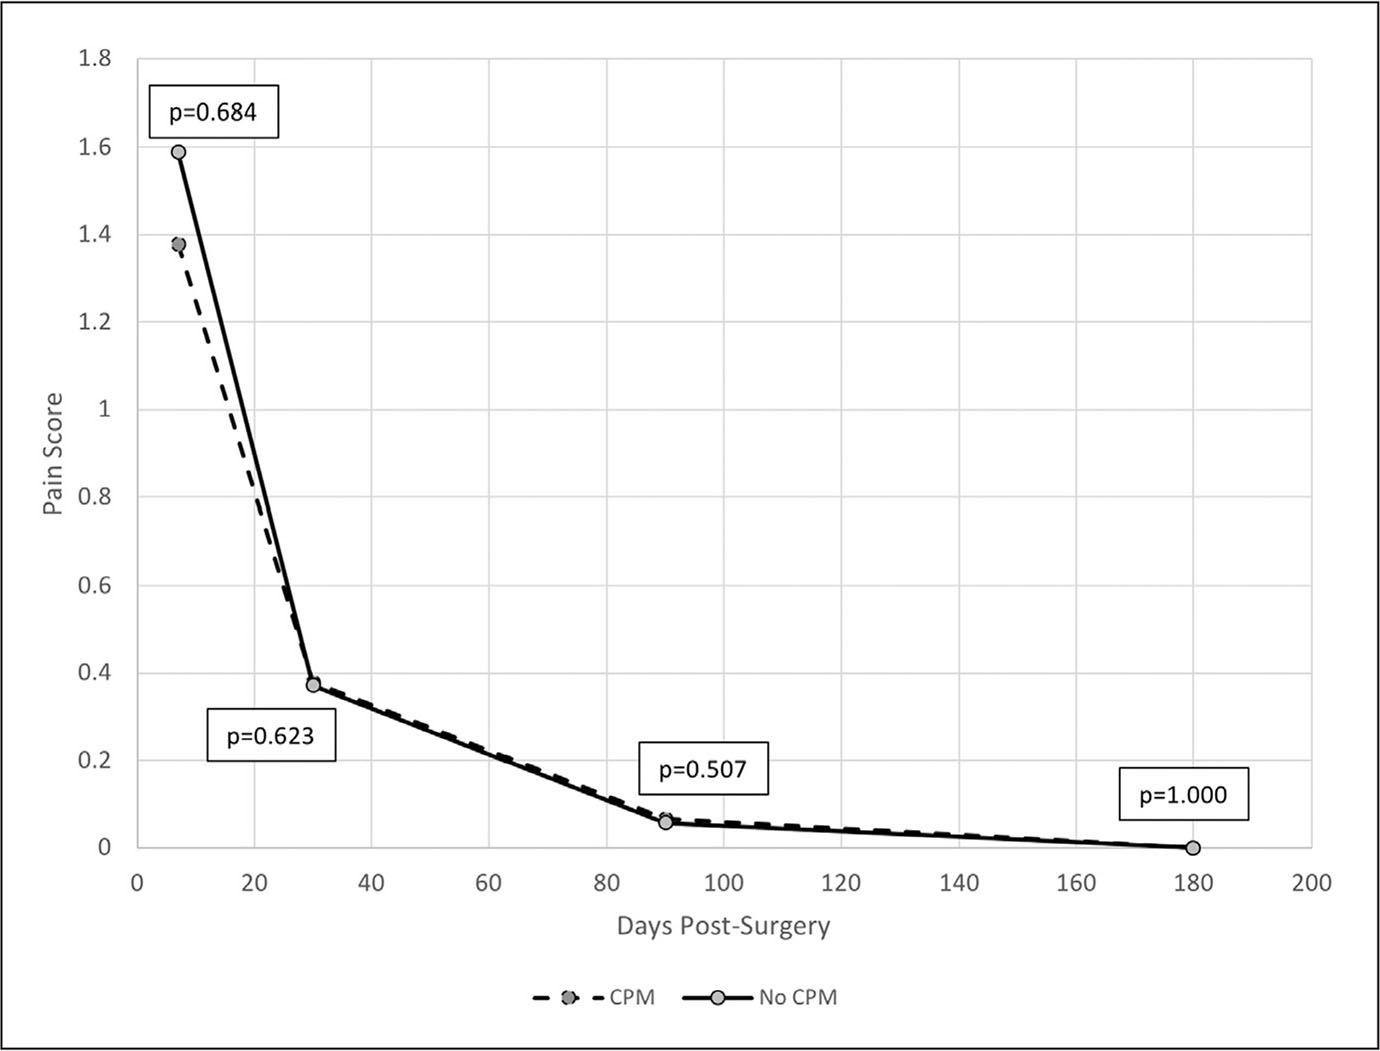 Effect of use of continuous passive motion (CPM) on postoperative pain scores. Values were obtained at physical therapy sessions and represent patient-identified pain levels on a scale of 0 to 10. Mann–Whitney U test found no significant difference between the cohorts at 1 week, 1 month, 3 months, and 6 months (P=.684, .623, .507, and 1.000, respectively).